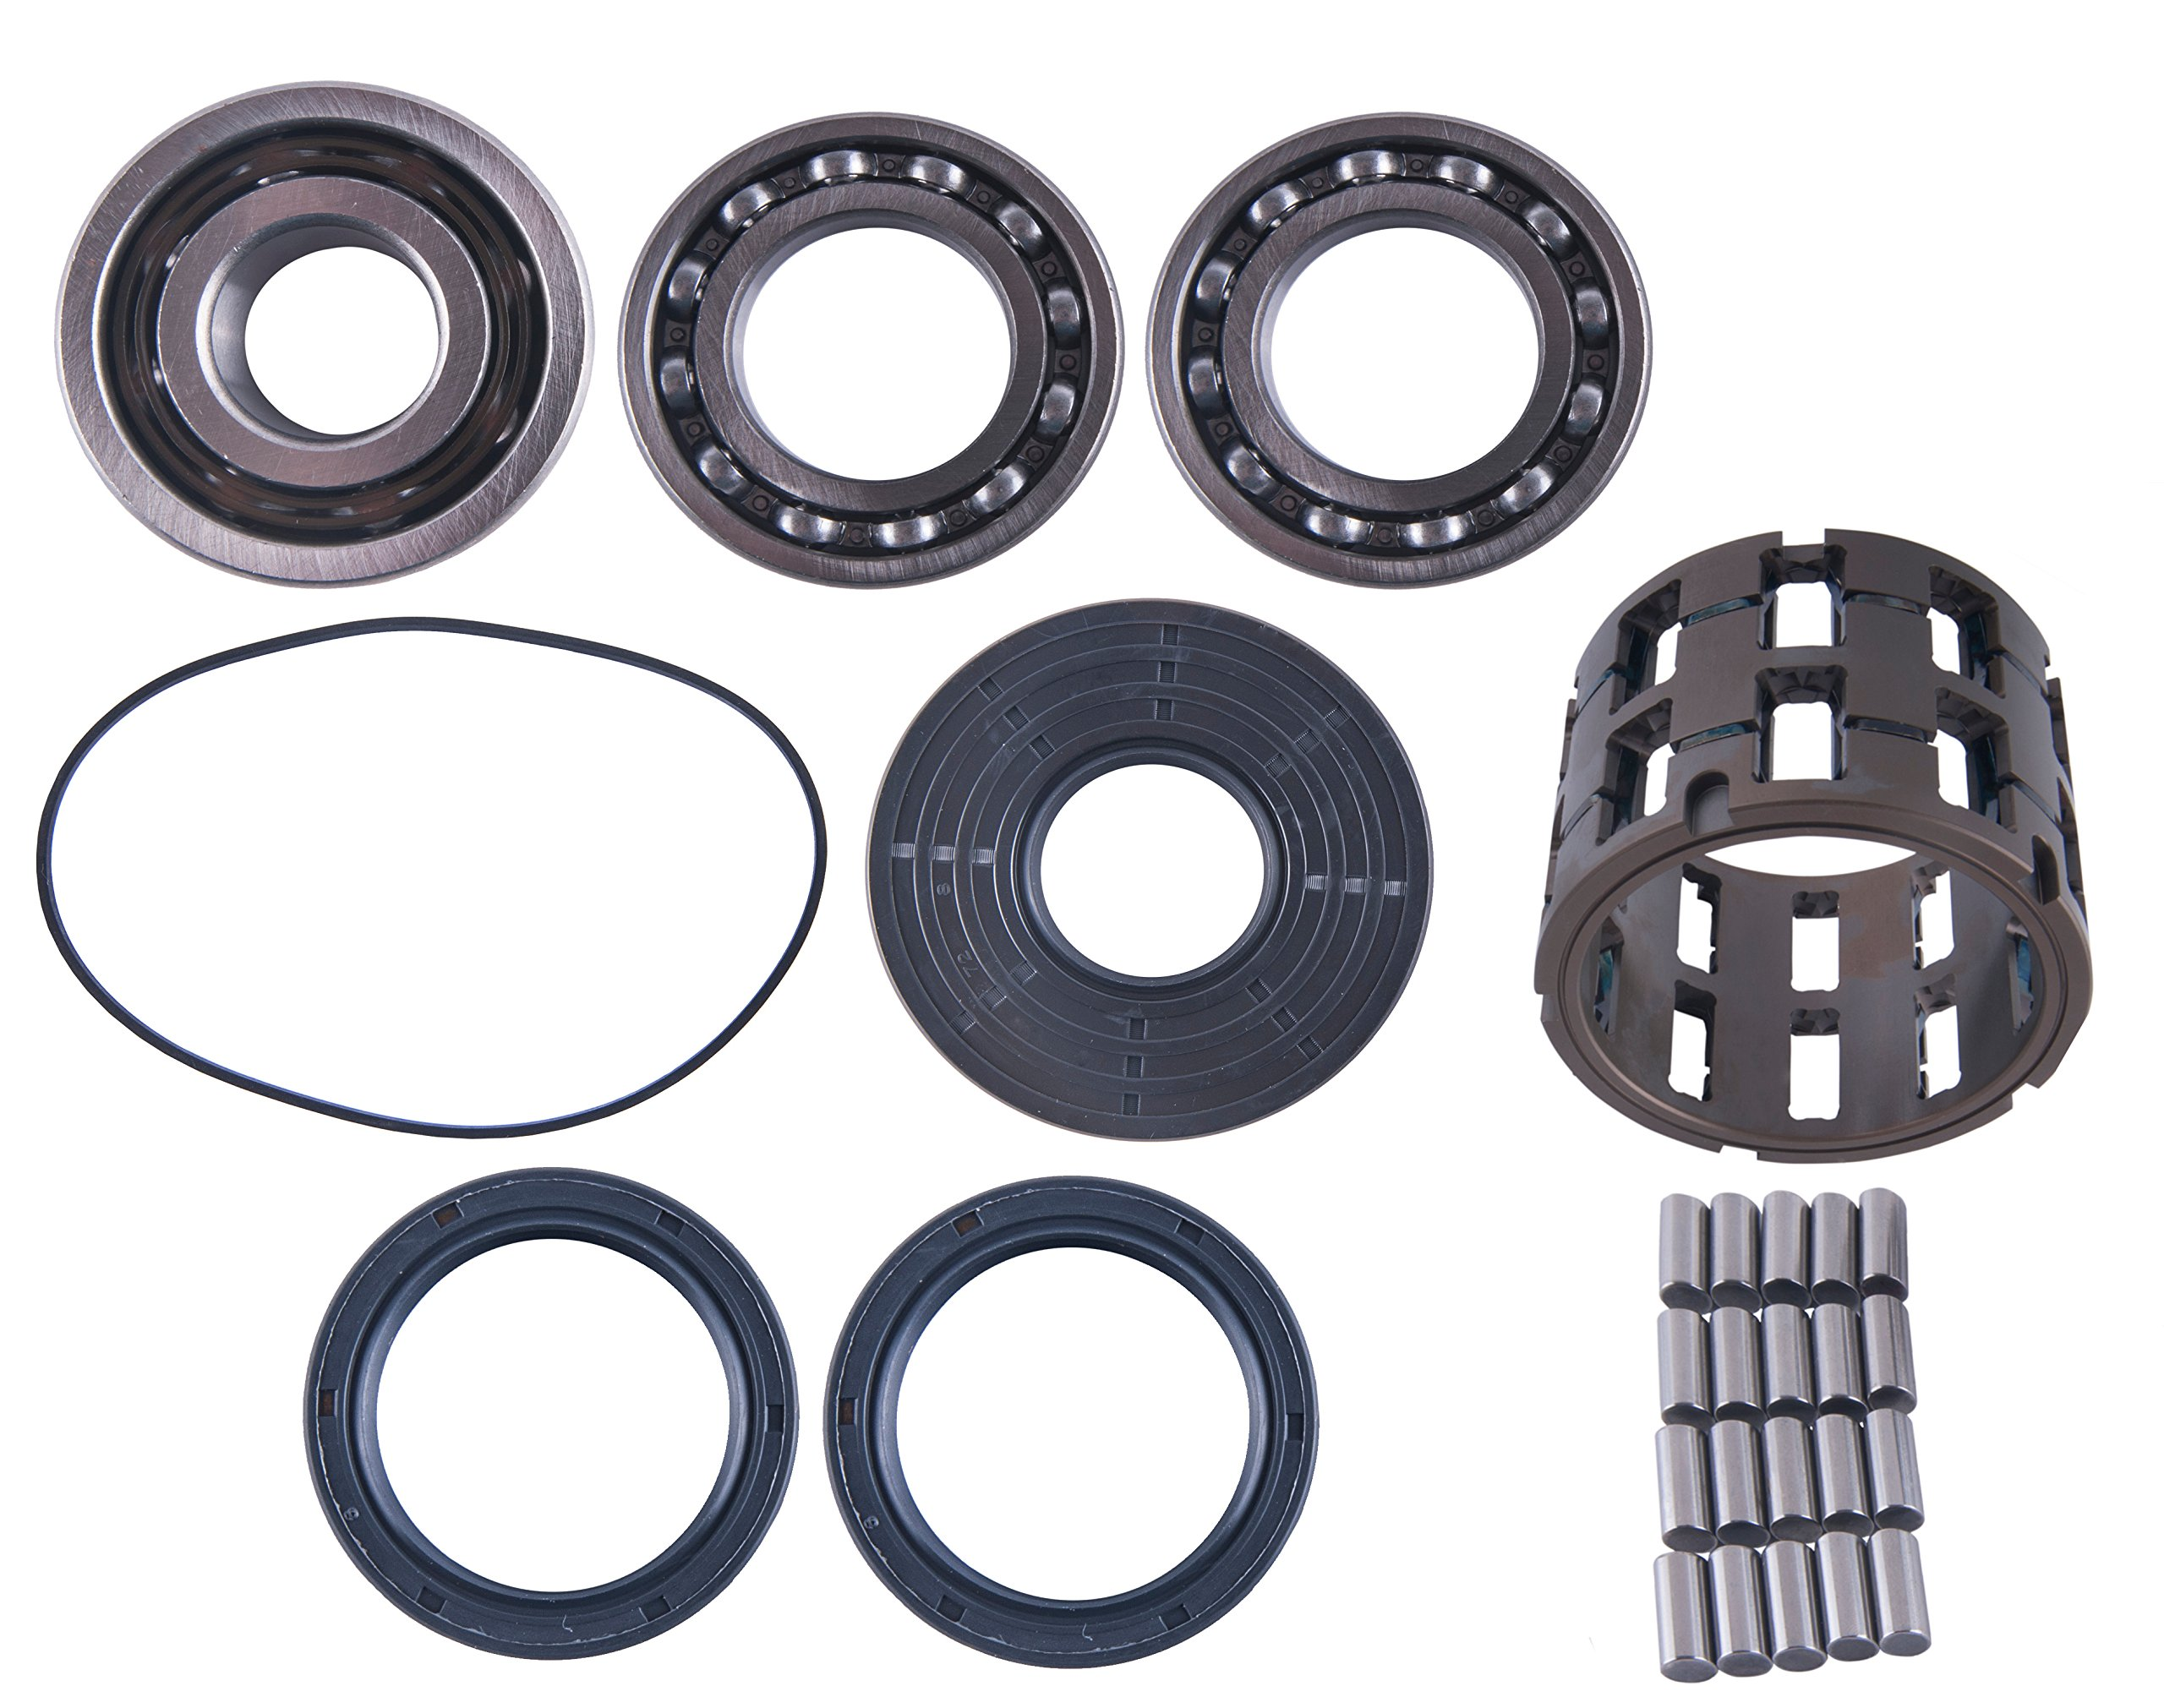 East Lake Axle front differential kit w/Sprague compatible with Polaris RZR 570/800 / 900 2011 2012 2013 2014 2015